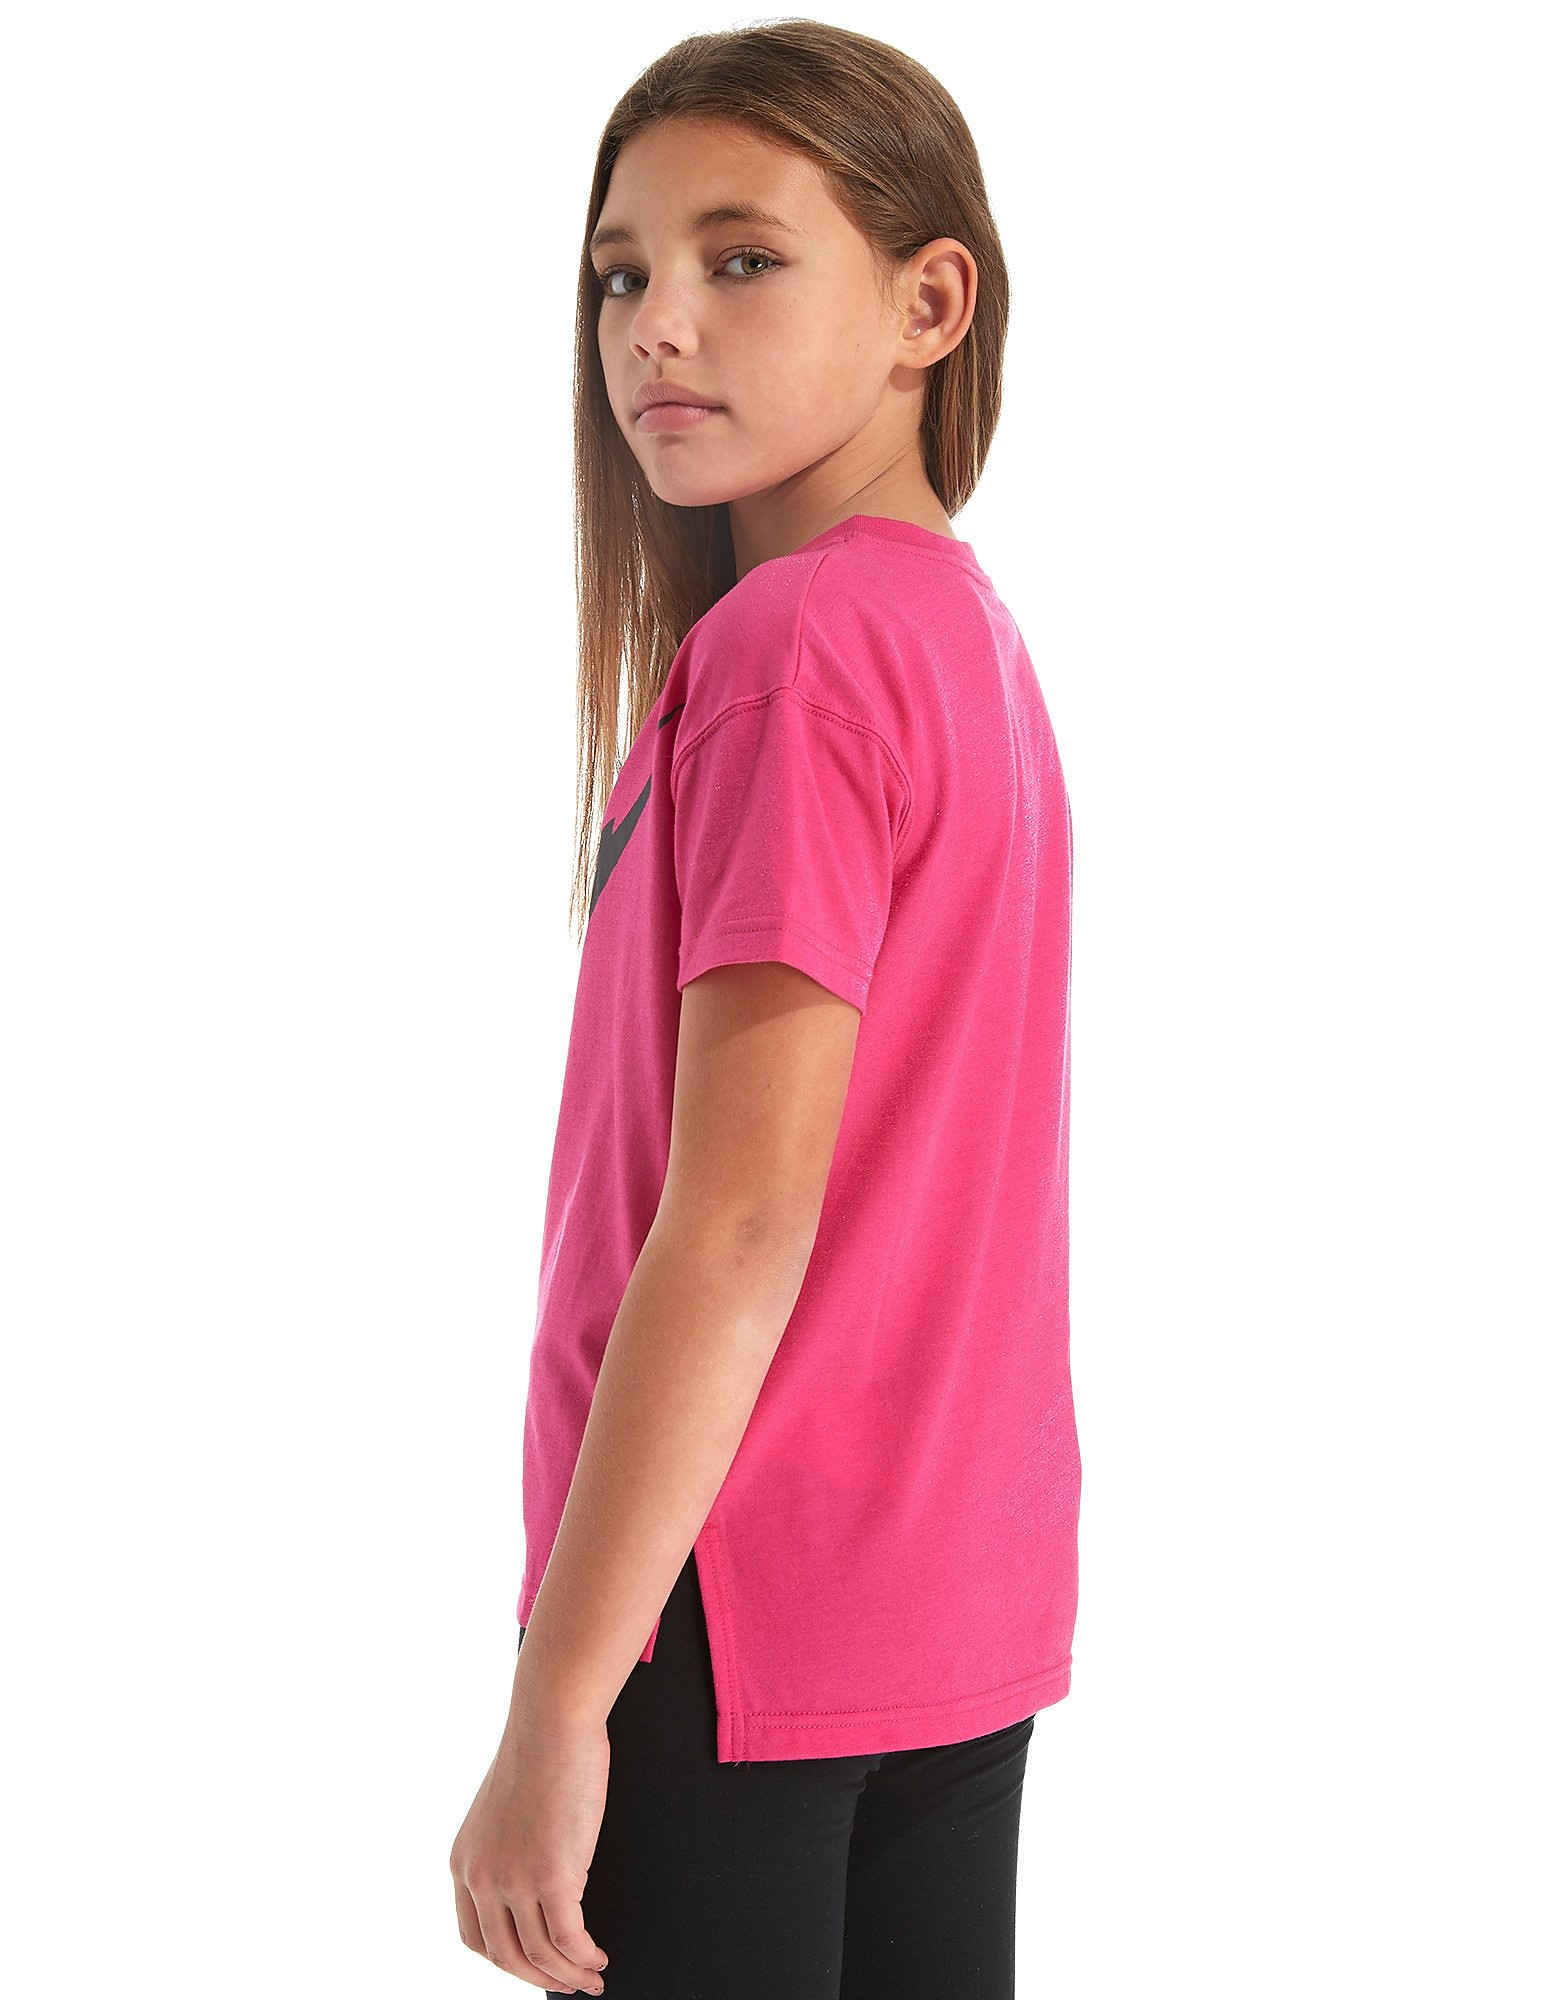 Nike Girls' Signal T-Shirt Junior